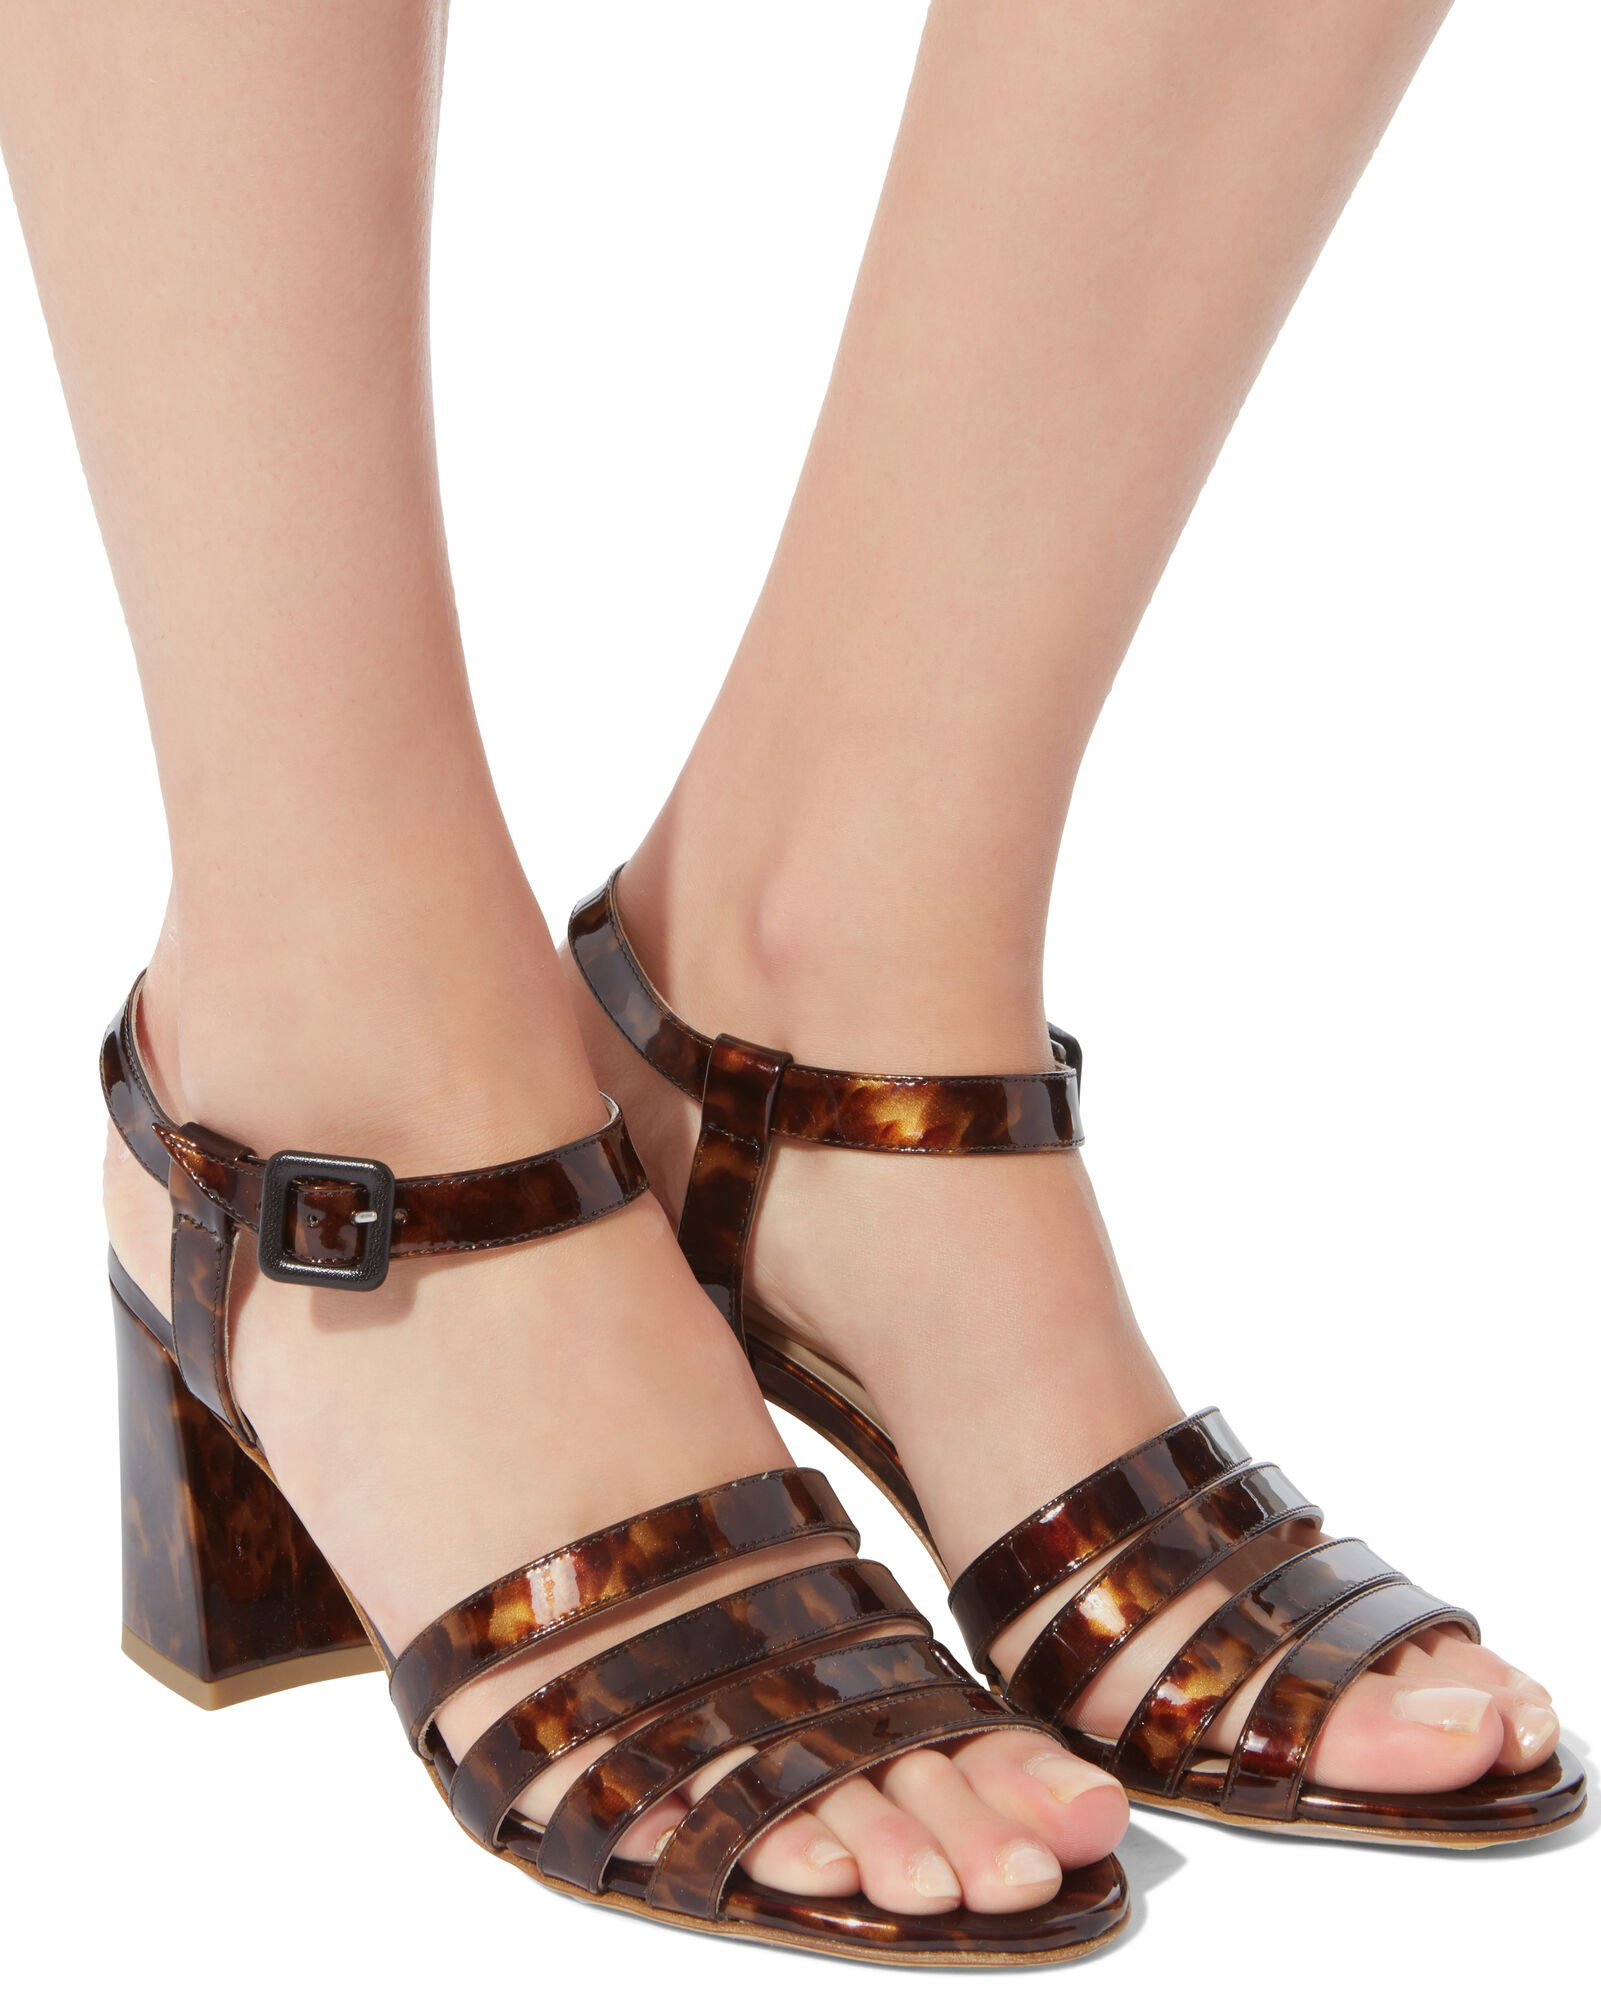 Palma Tortoise Patent Leather Sandals, BROWN, hi-res